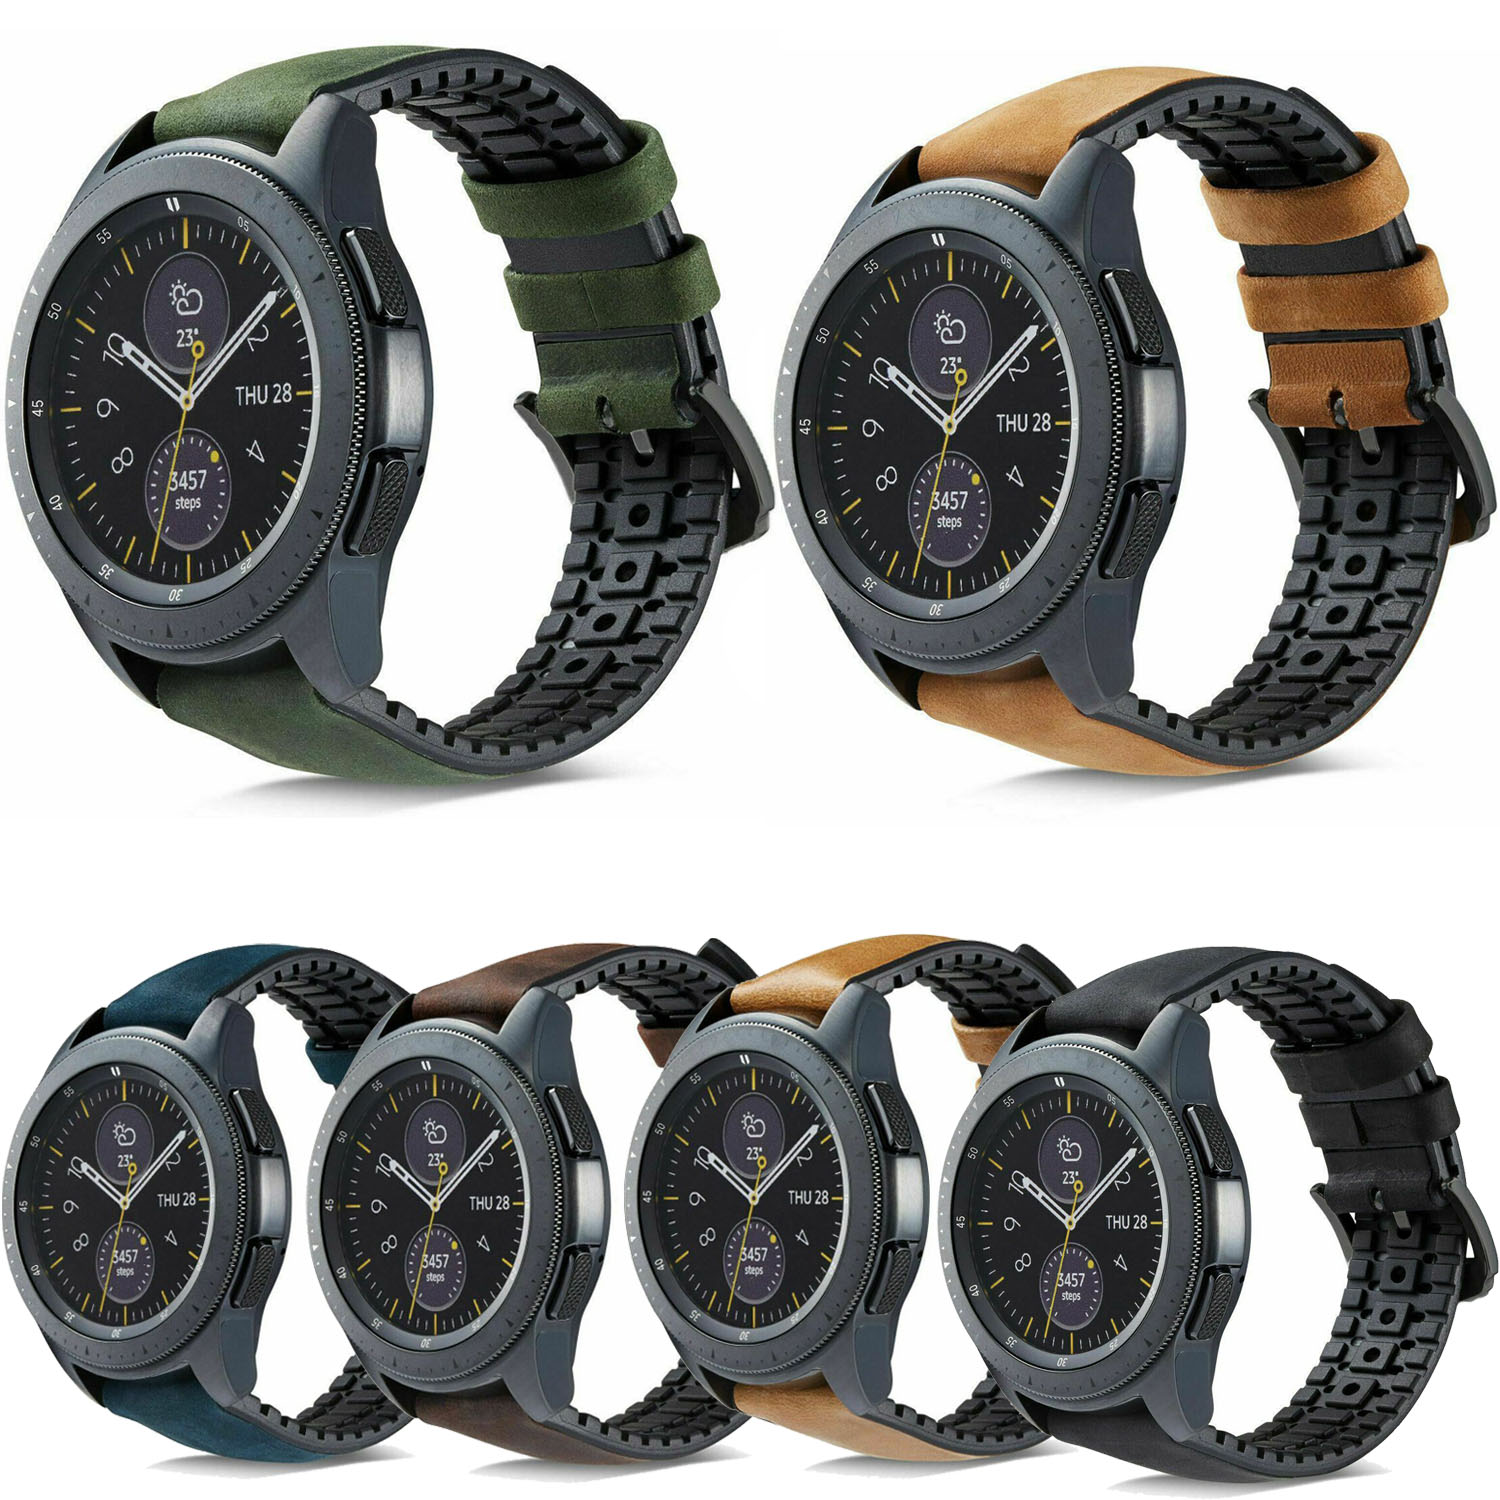 Silicone Leather Strap For Samsung Galaxy Watch 42mm 46mm Band For Gear S2 S3 Classic Frontier Band For Huawei Watch GT Strap